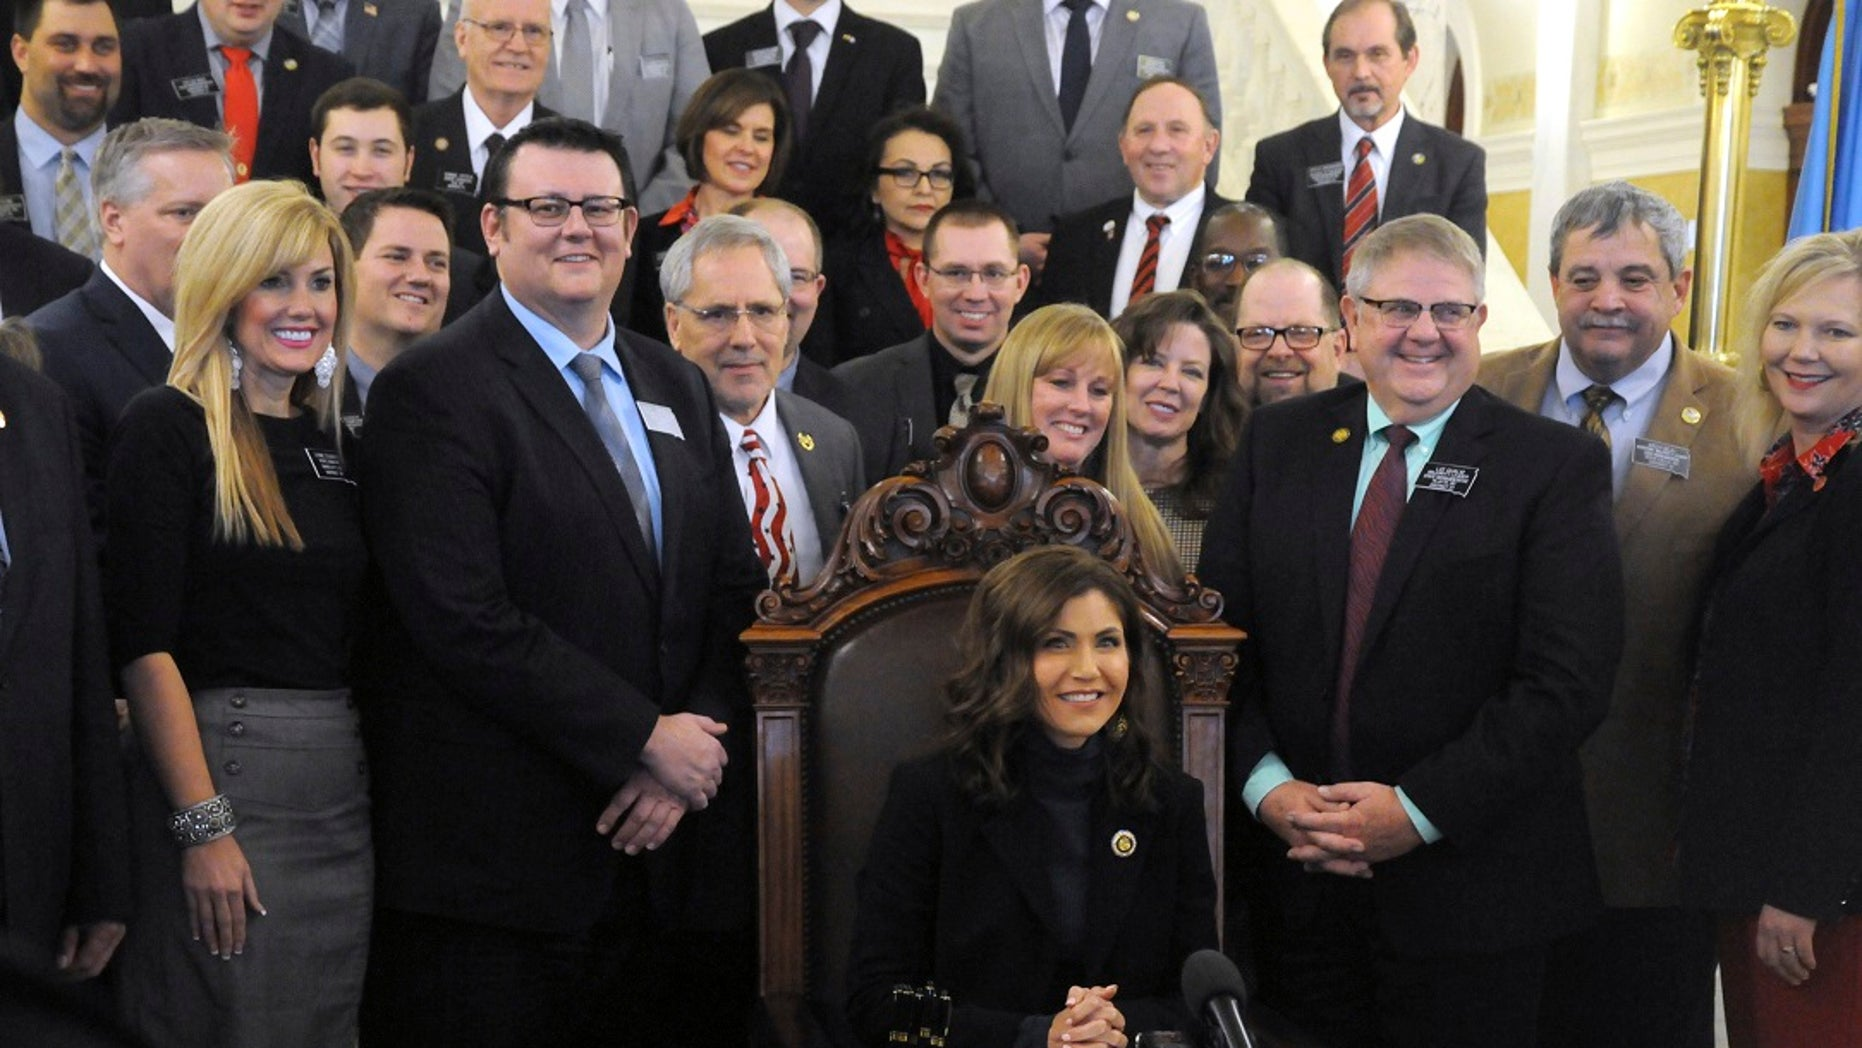 Gov. Kristi Noem smiles after signing her first bill into law at the state Capitol in Pierre, S.D., Thursday, Jan. 31, 2019. The measure allows people to carry concealed pistols without a permit in the state. (Associated Press)